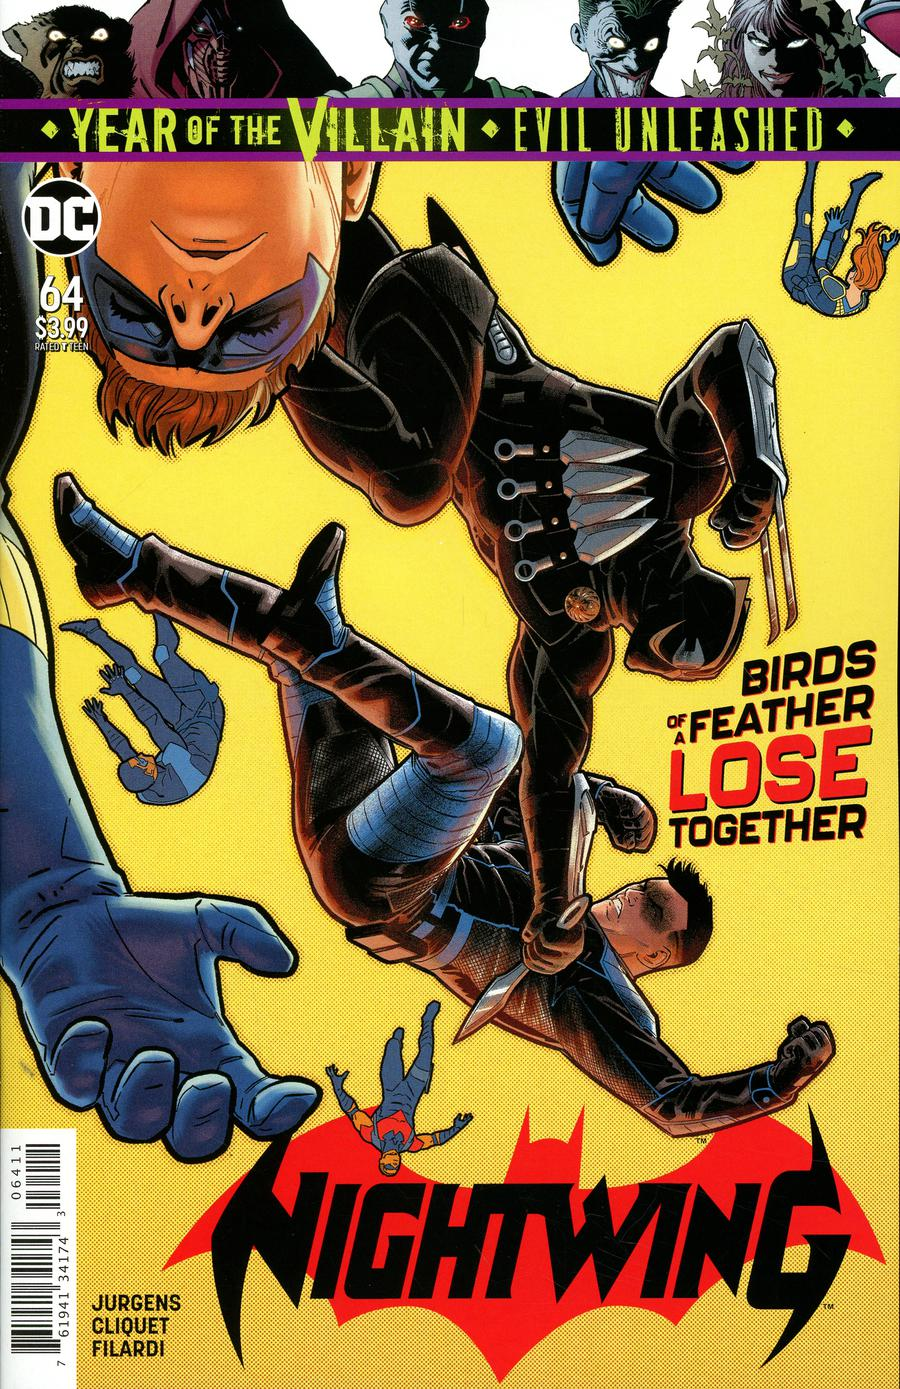 Nightwing Vol 4 #64 Cover A Regular Bruno Redondo Cover (Year Of The Villain Evil Unleashed Tie-In)